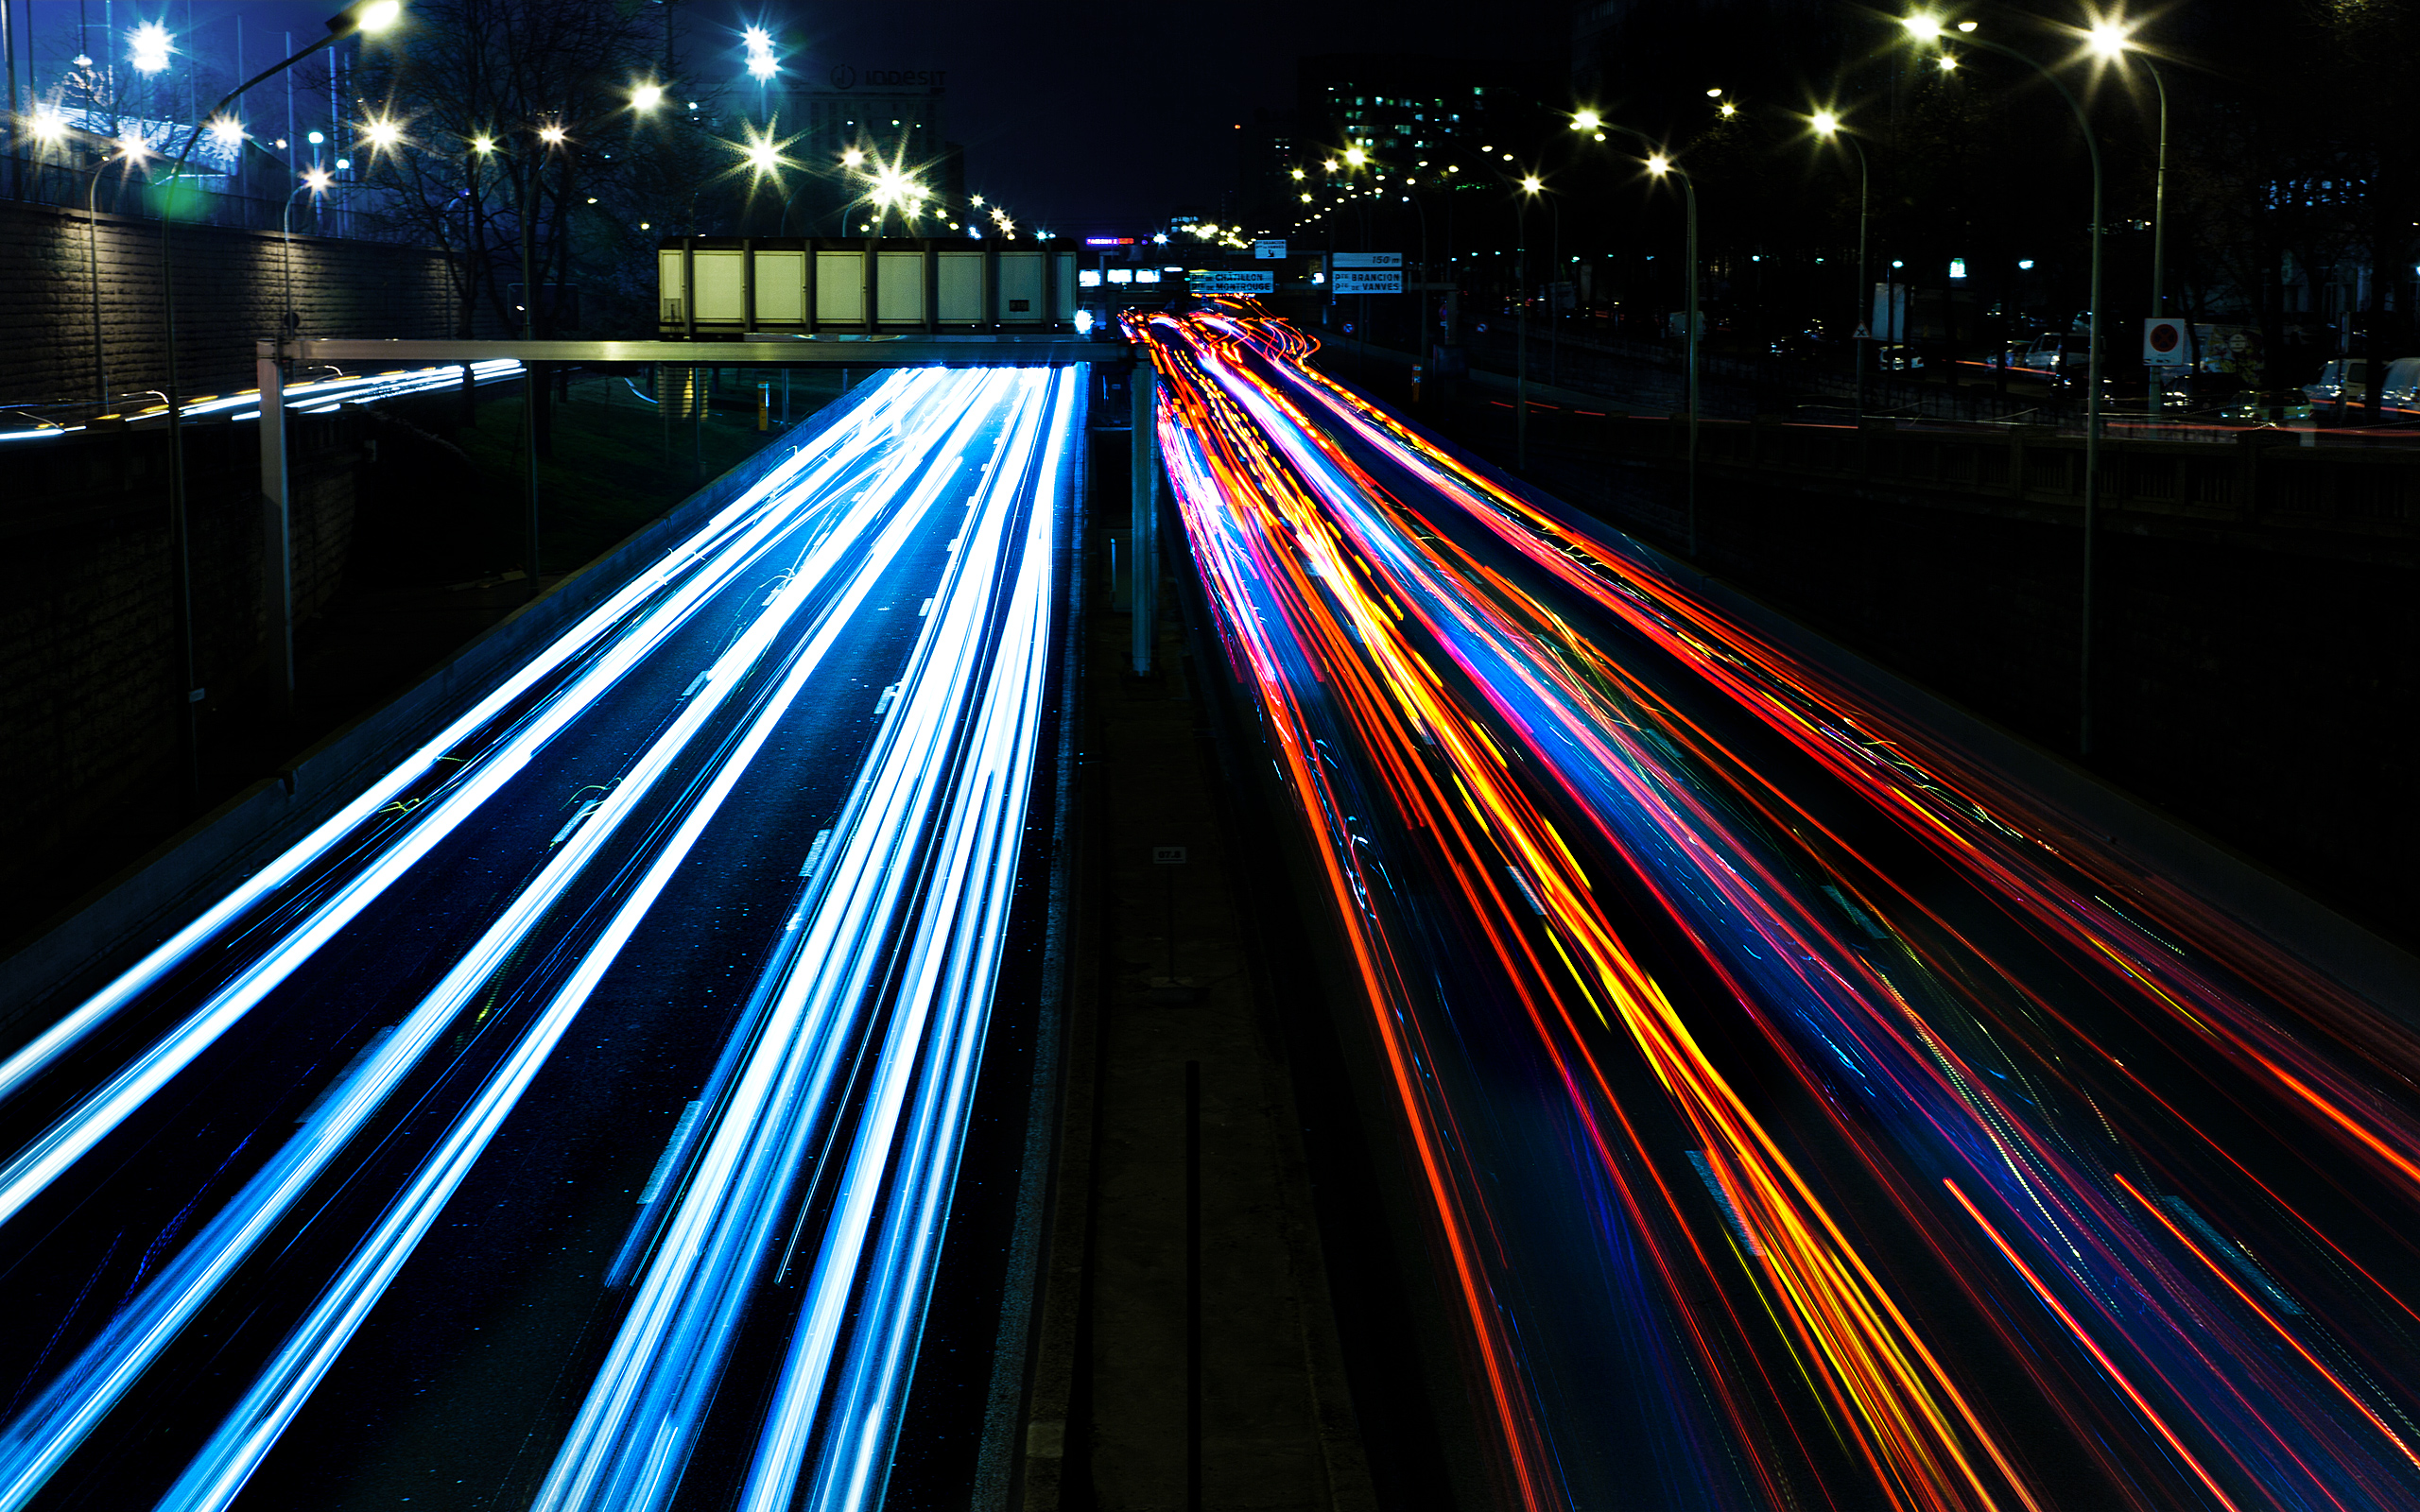 Highway Lights 1342.3 Kb